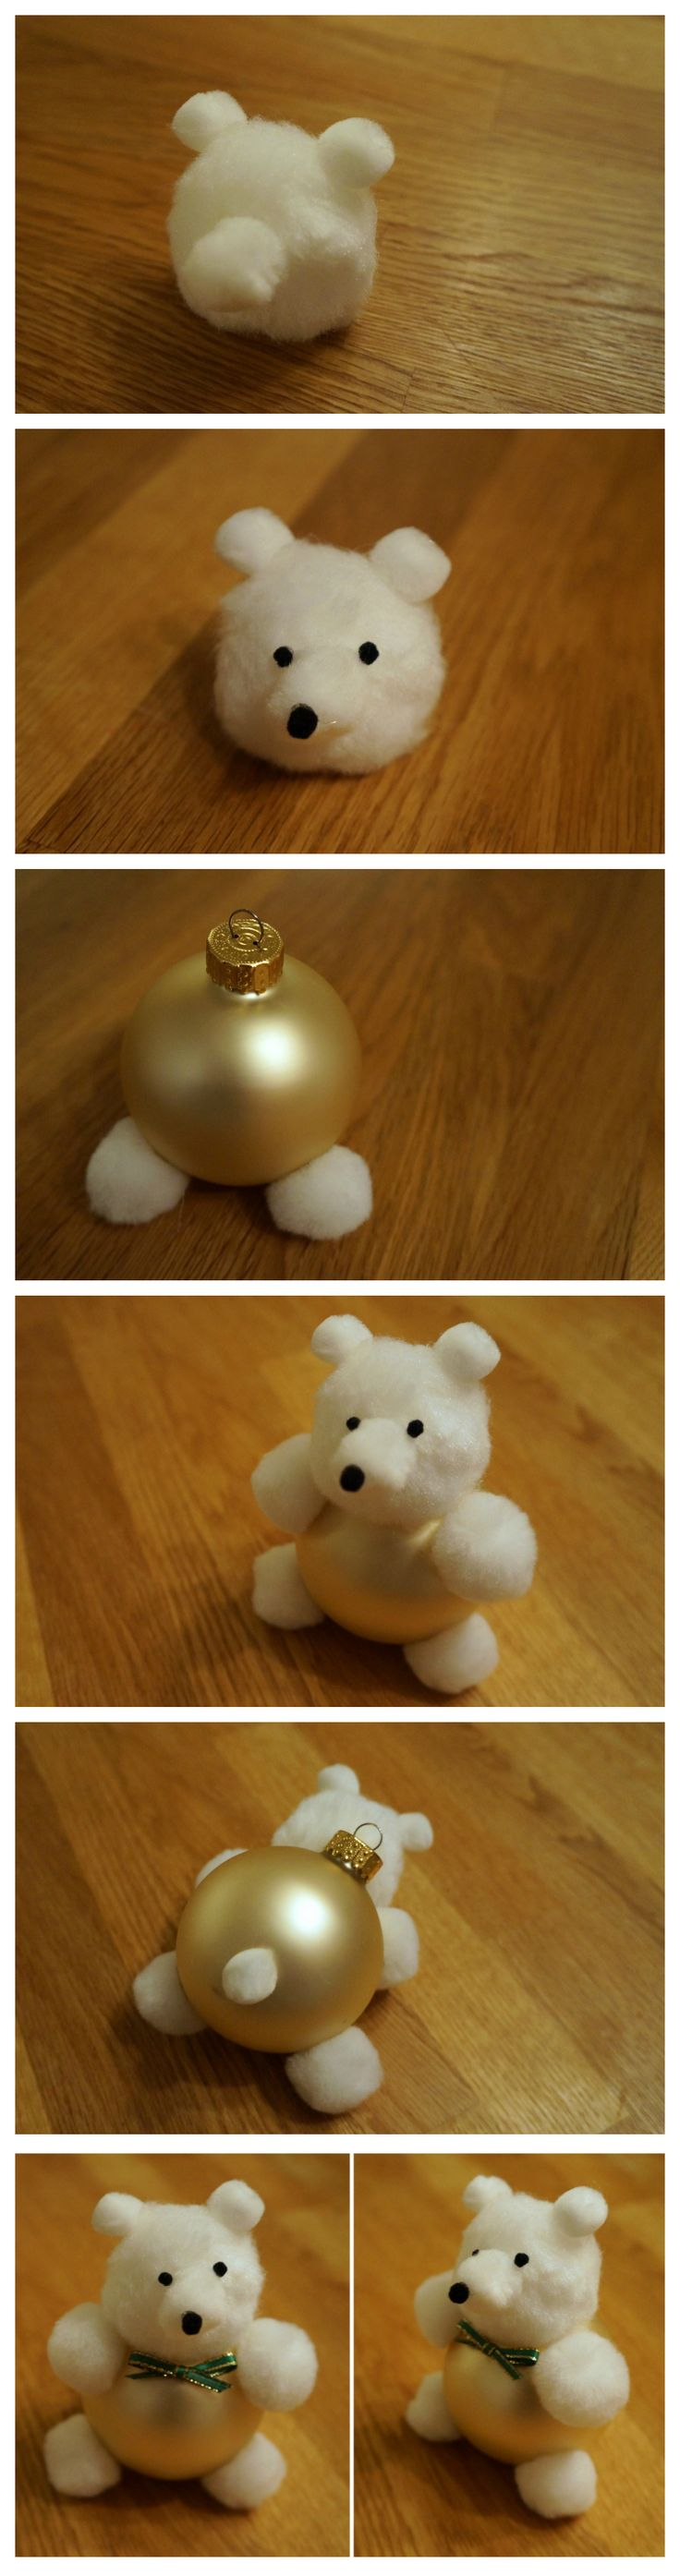 Fun idea to do with the kids for our tree this year, maybe even angels and snowmen